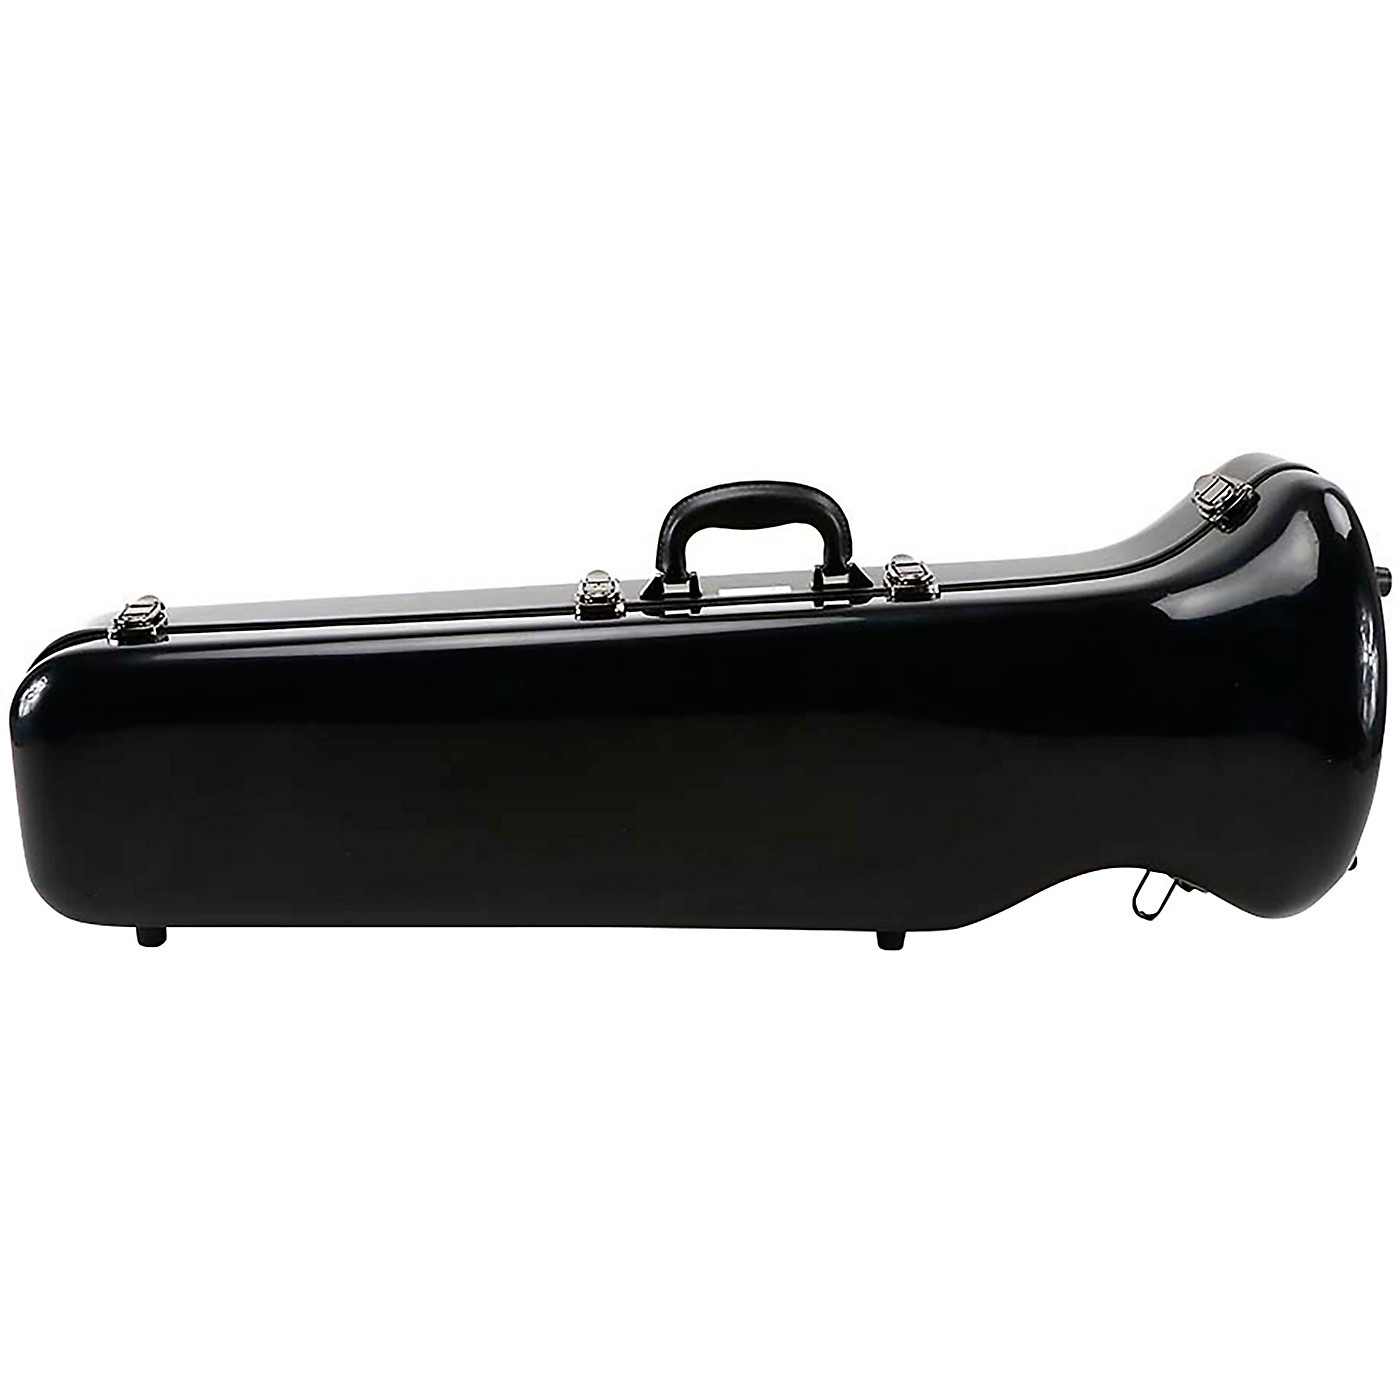 J. Winter CE 178 JW-Eastman Series Fiberglass Bass Trombone Case thumbnail